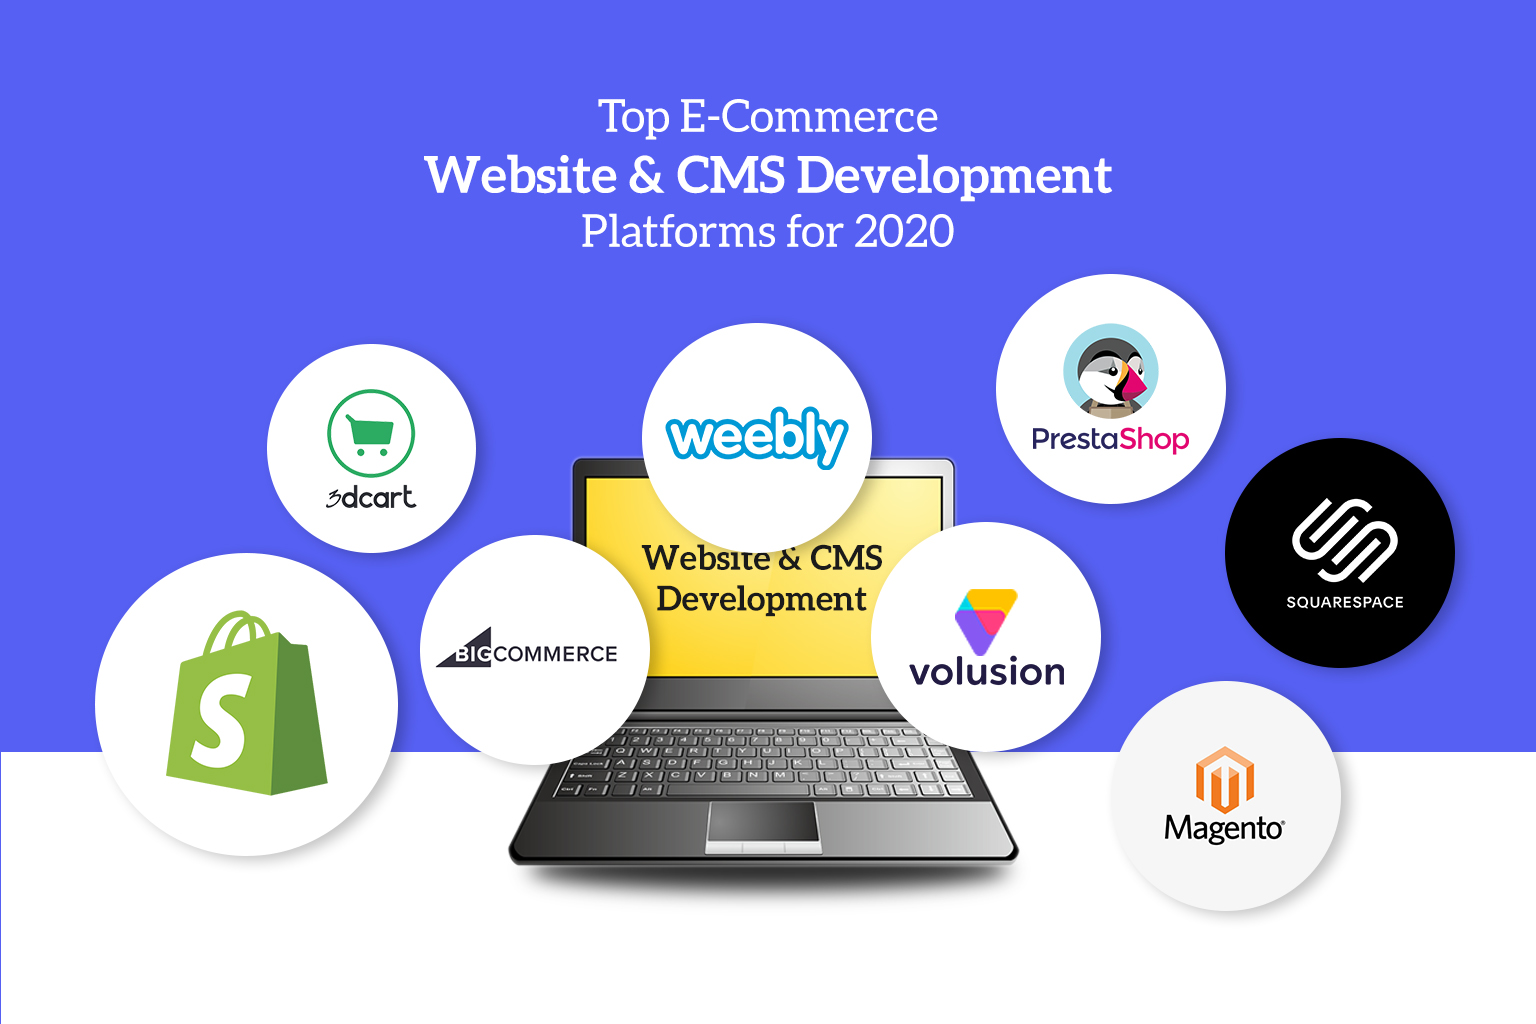 Most Anticipated eCommerce Website & CMS Development Platforms 2020